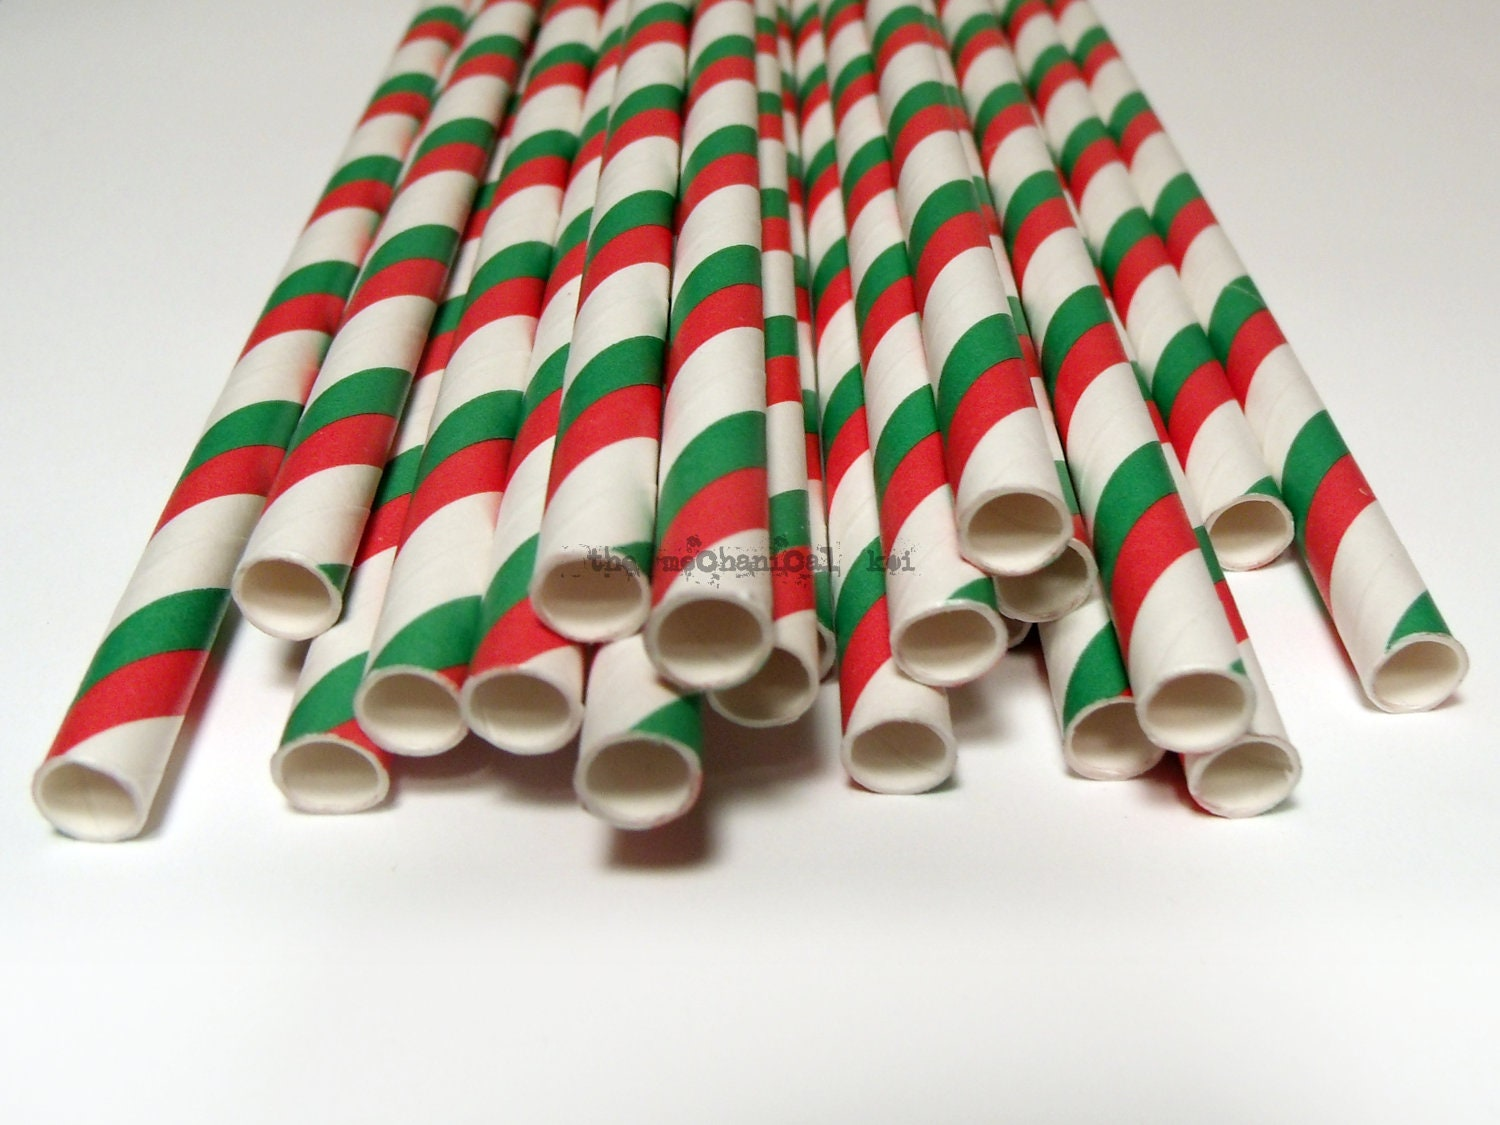 25 Christmas Striped Straws Drink Flags Party Favor Decoration Retro Soda Holiday